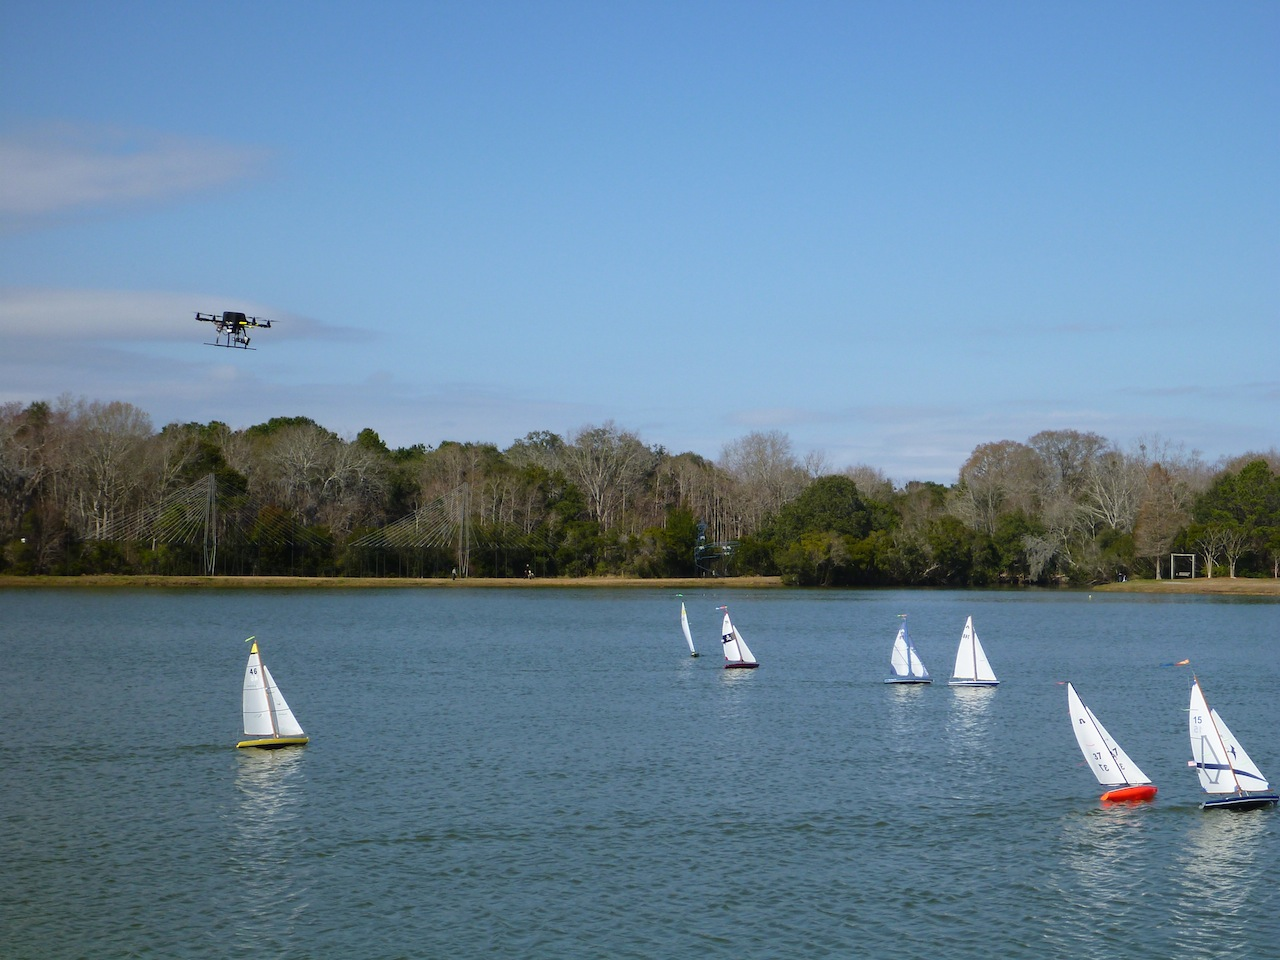 David Flying Over The RC Sailboats